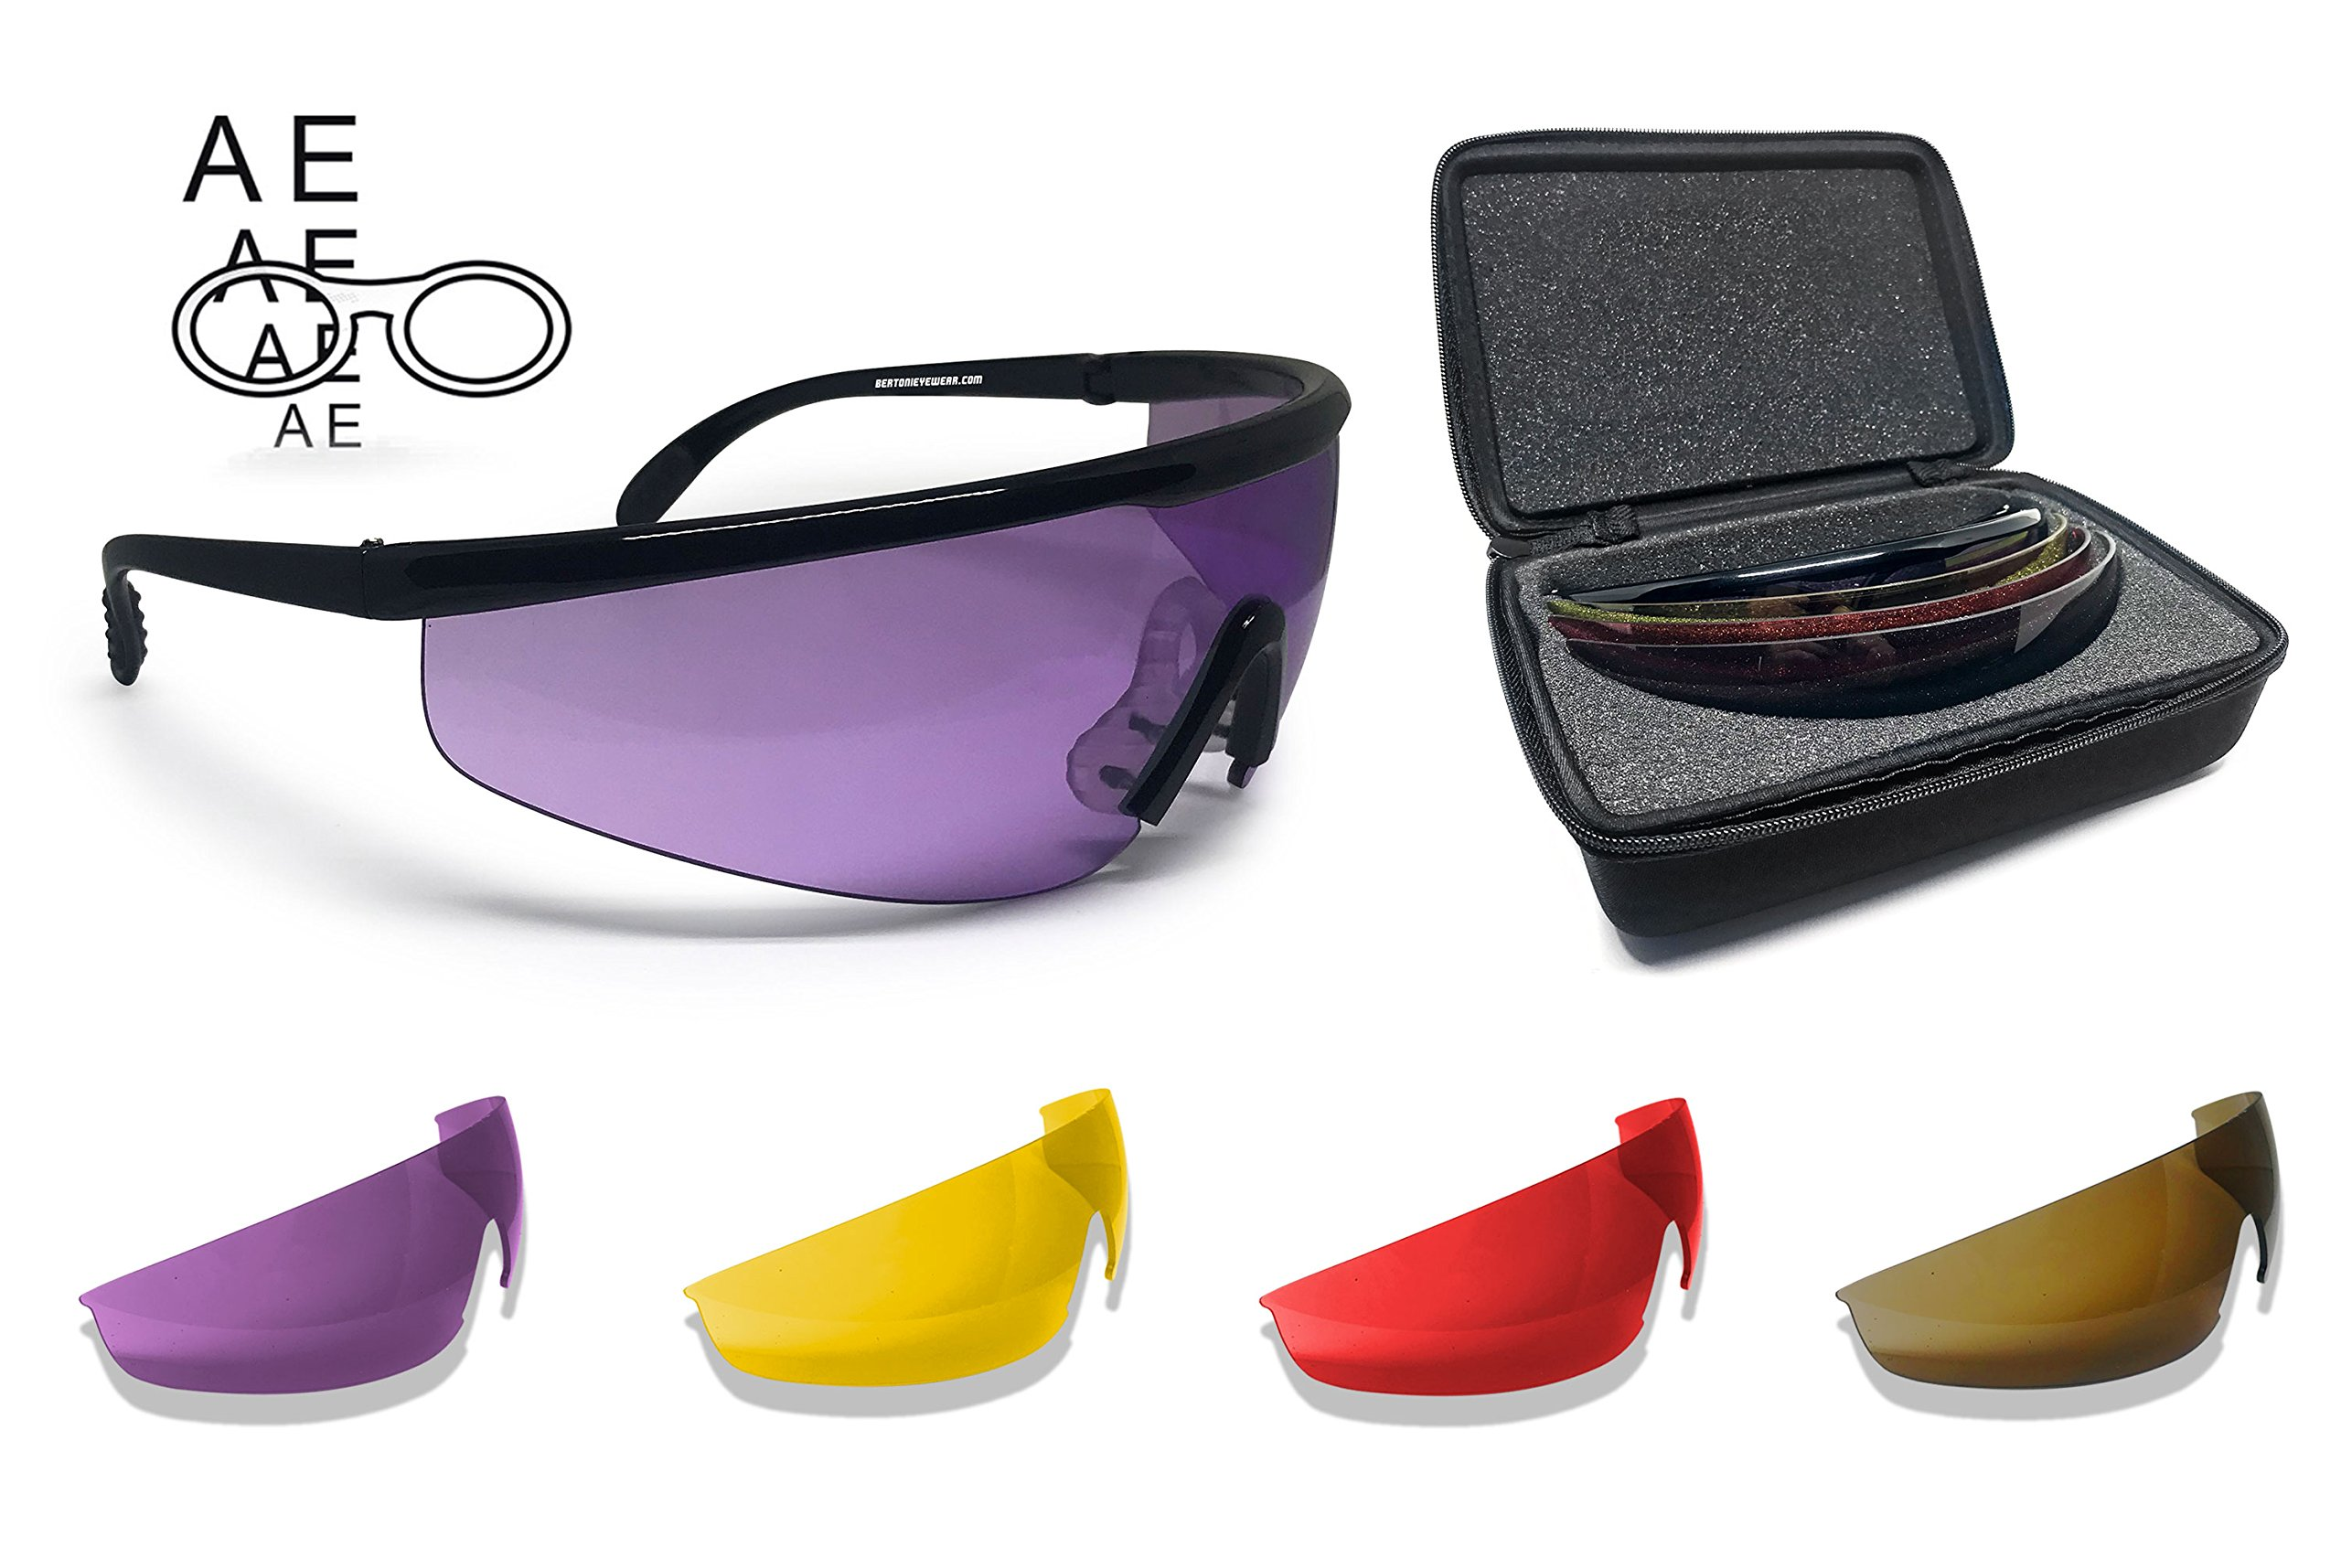 Bertoni Shooting Glasses with 4 Interchangeable Lenses and Carrying Case by Bertoni Italy – AF899 Tactical Protective Safety Glasses with Optical Prescription Carrier